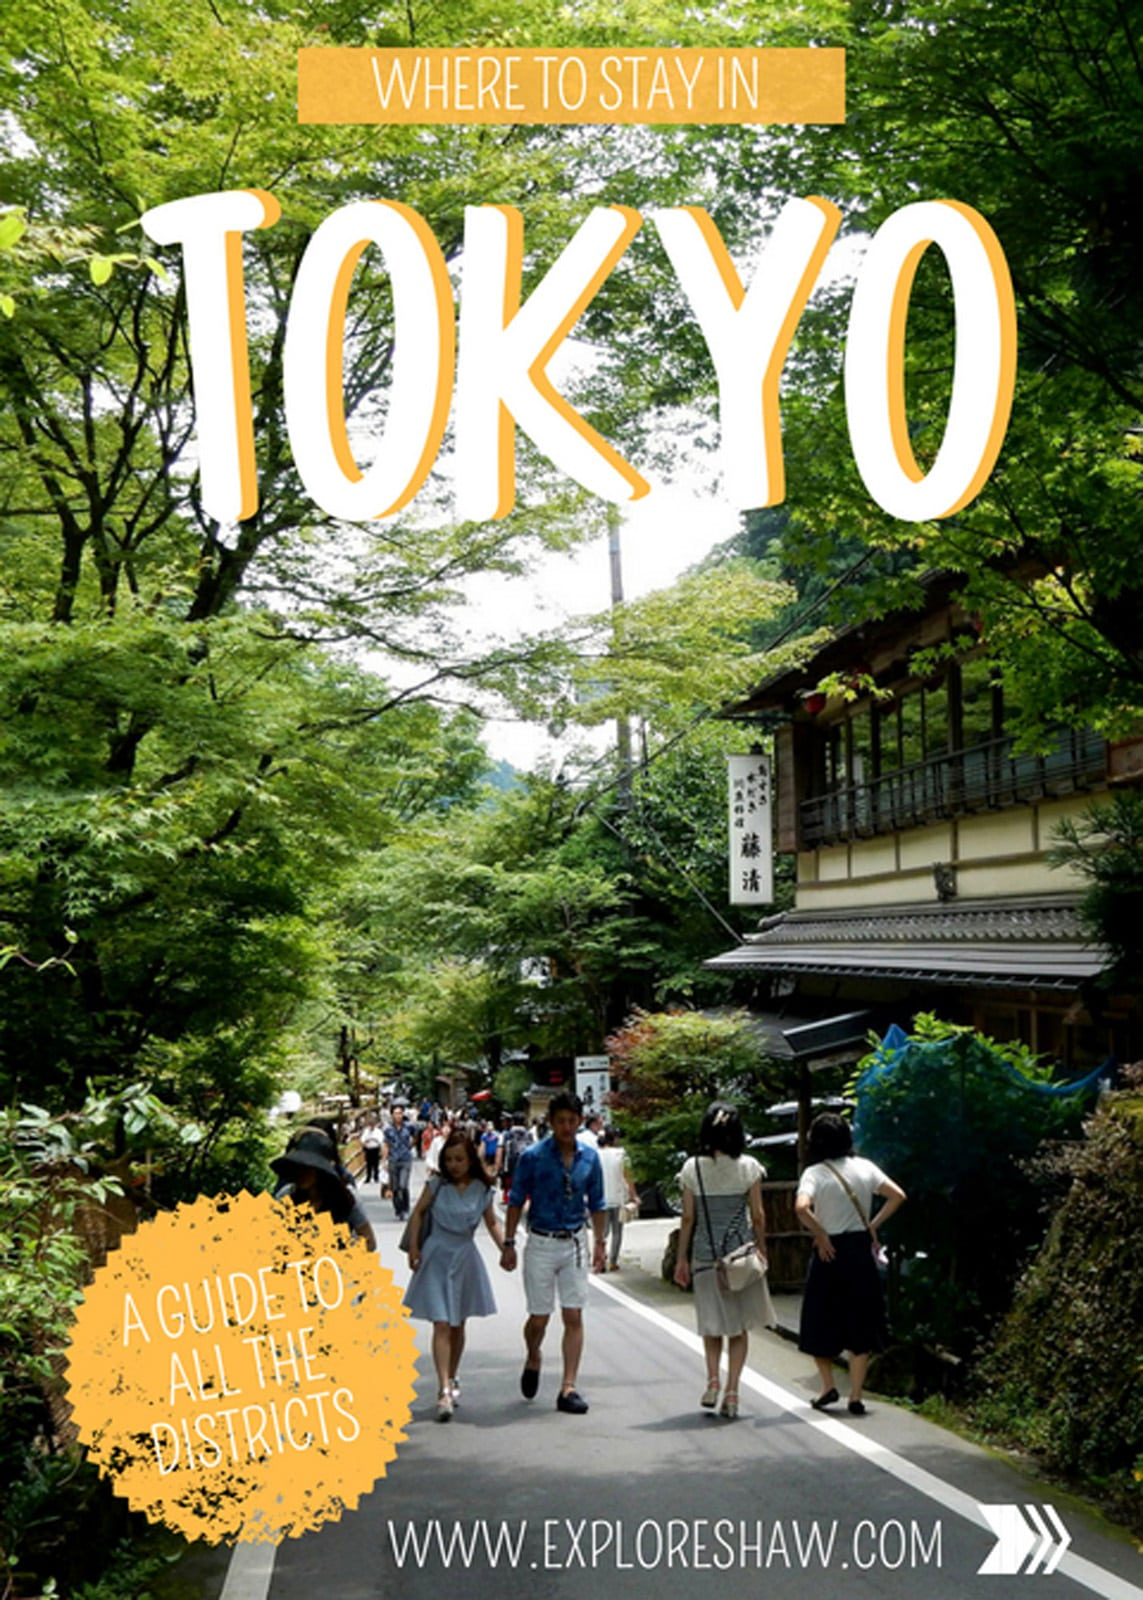 Without a doubt, almost every traveller visiting Japan will visit Tokyo. It is the country's capital city and a great first place to start for your trip to Japan. However, within Tokyo itself it feels like there are tiny mini cities, each with their own themes, vibes and attractions. #Japan #Tokyo